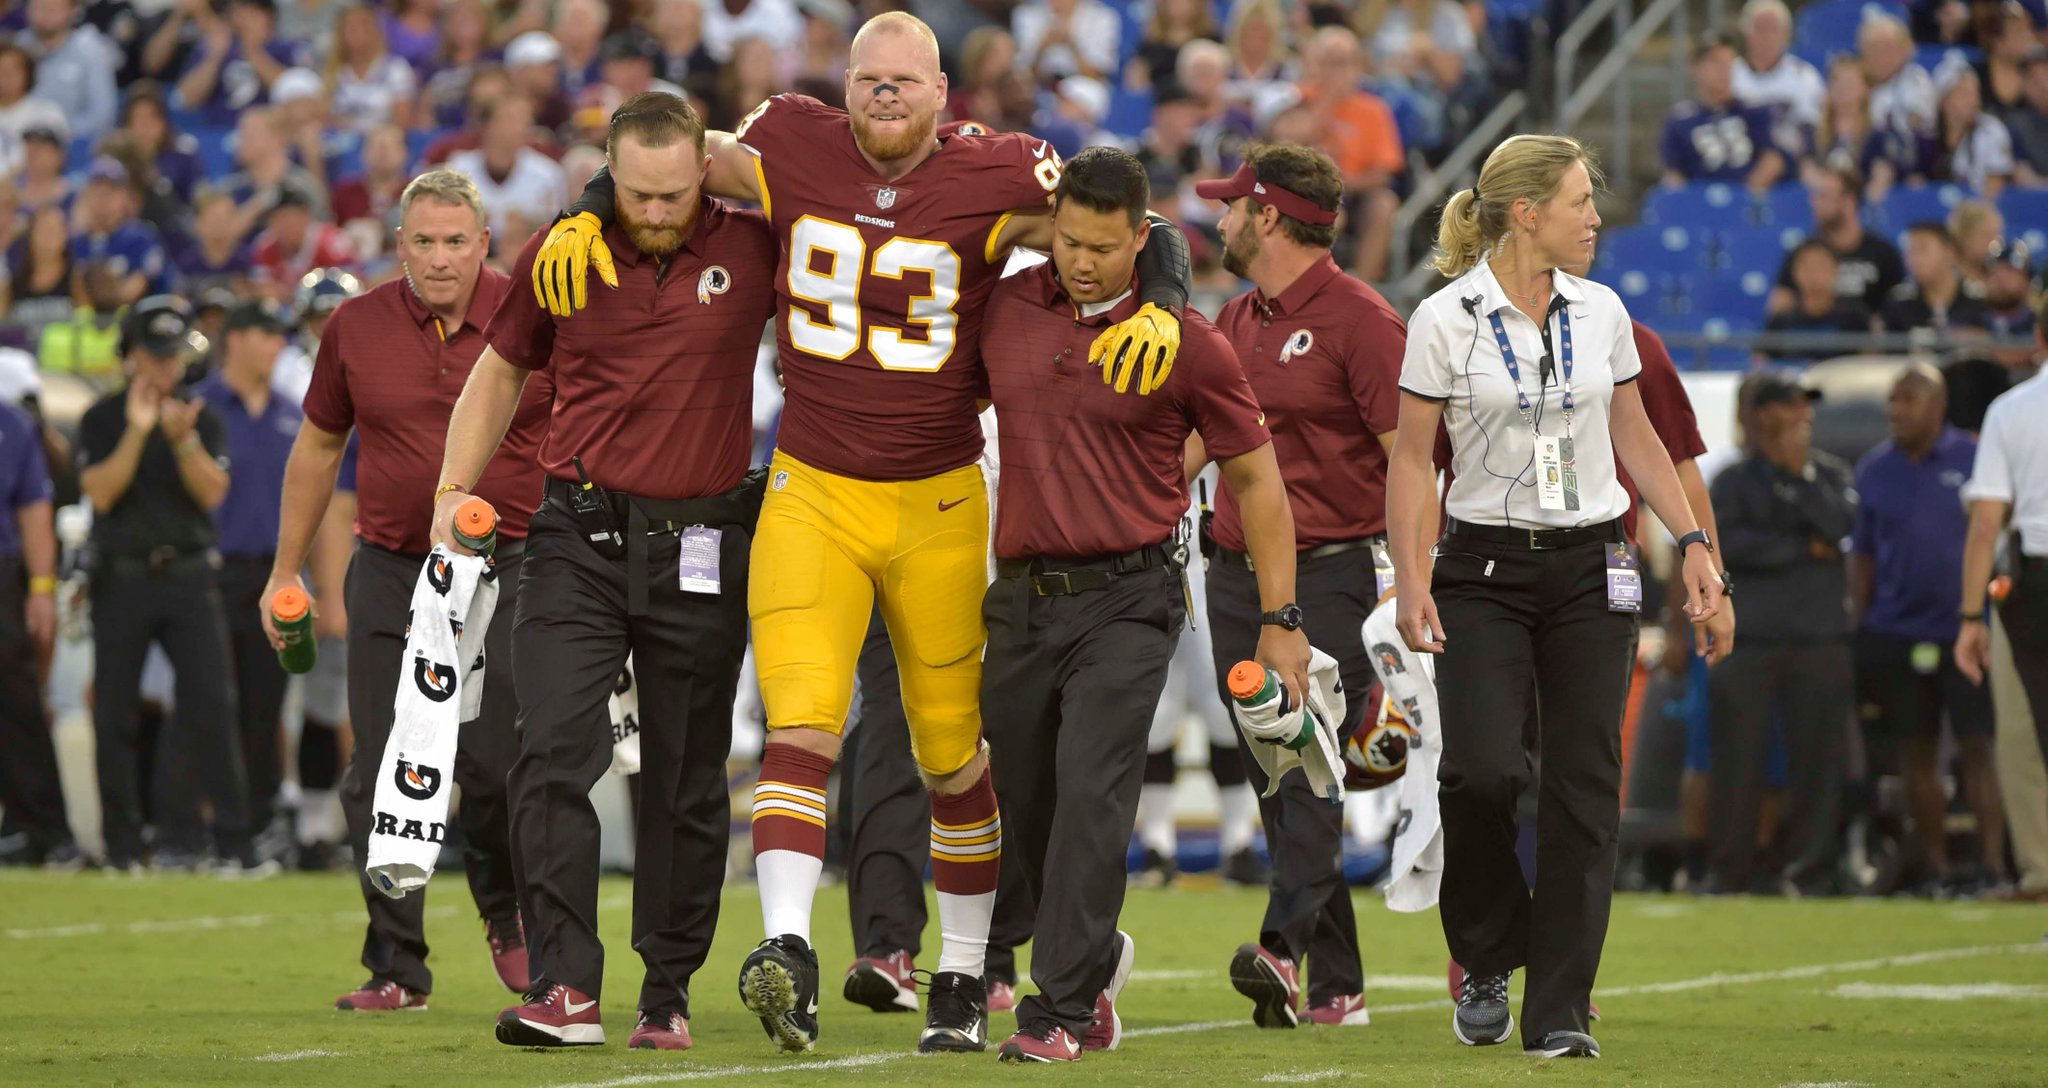 Redskins LB Trent Murphy Will Miss the Entire 2017 Season With Torn ACL/MCL